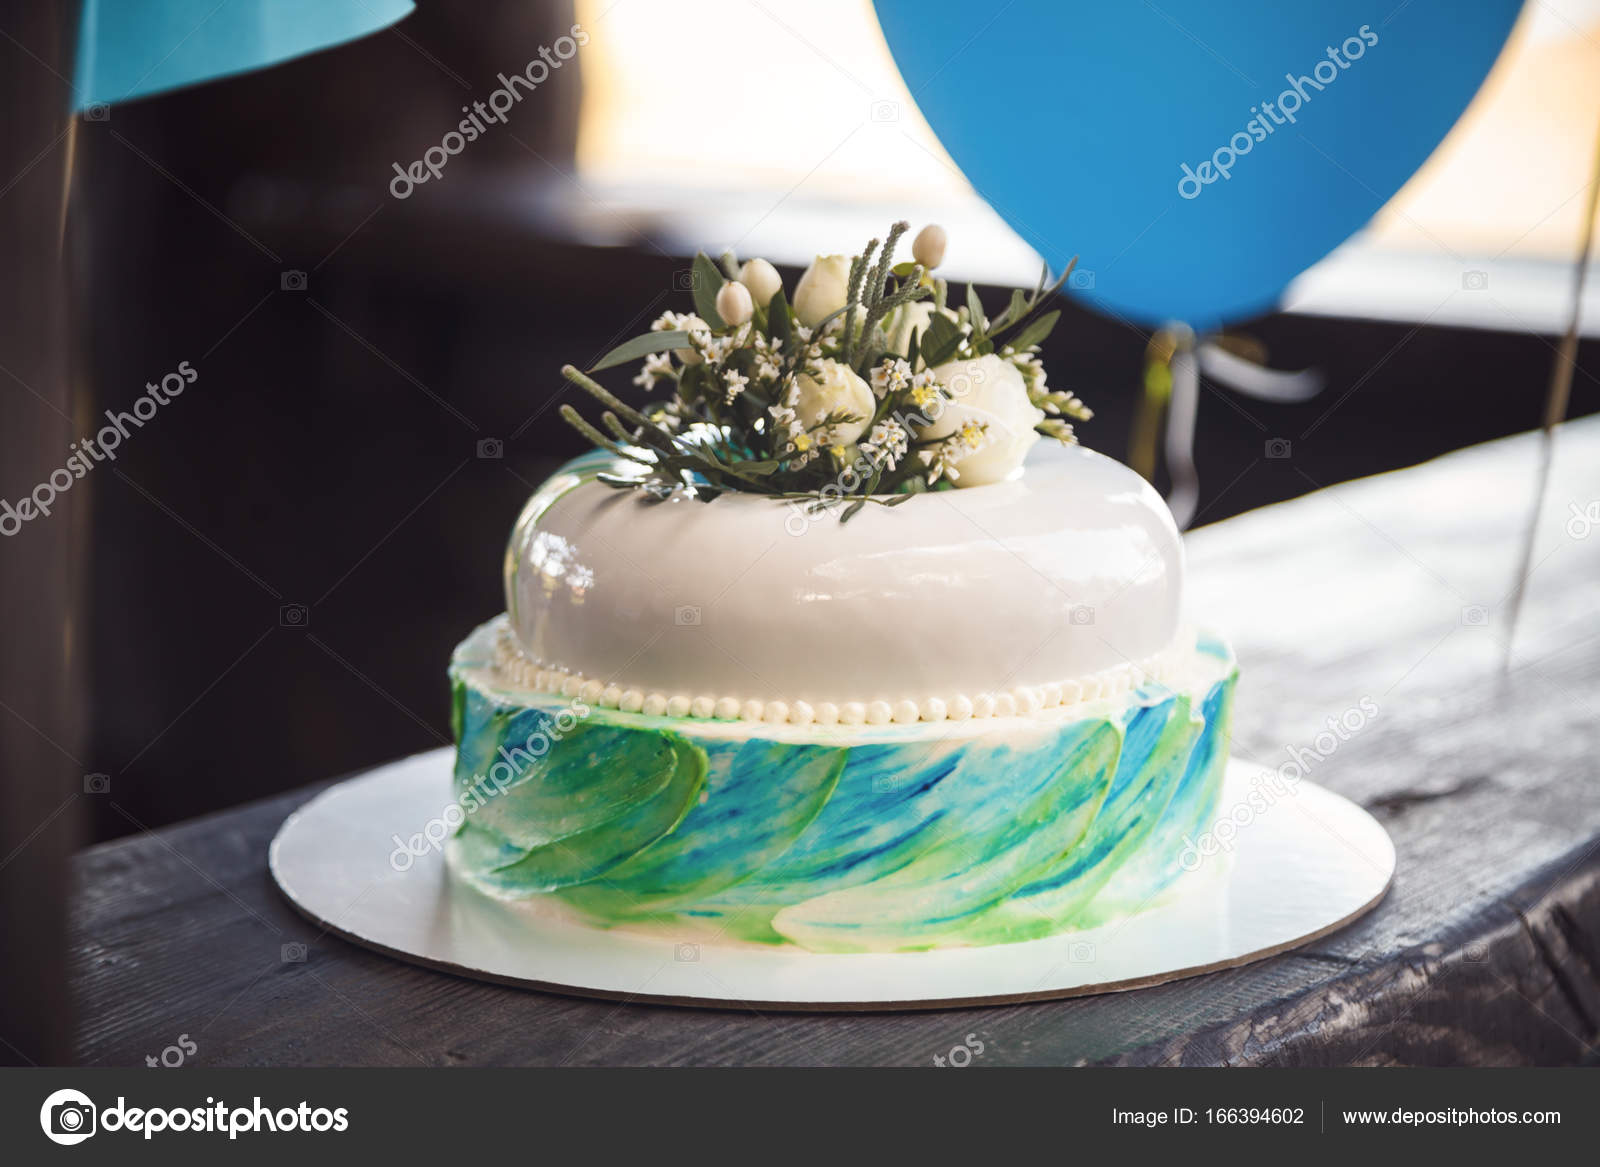 Birthday cake decorated by flowers on wood background stock photo birthday cake decorated by flowers on wood background stock photo izmirmasajfo